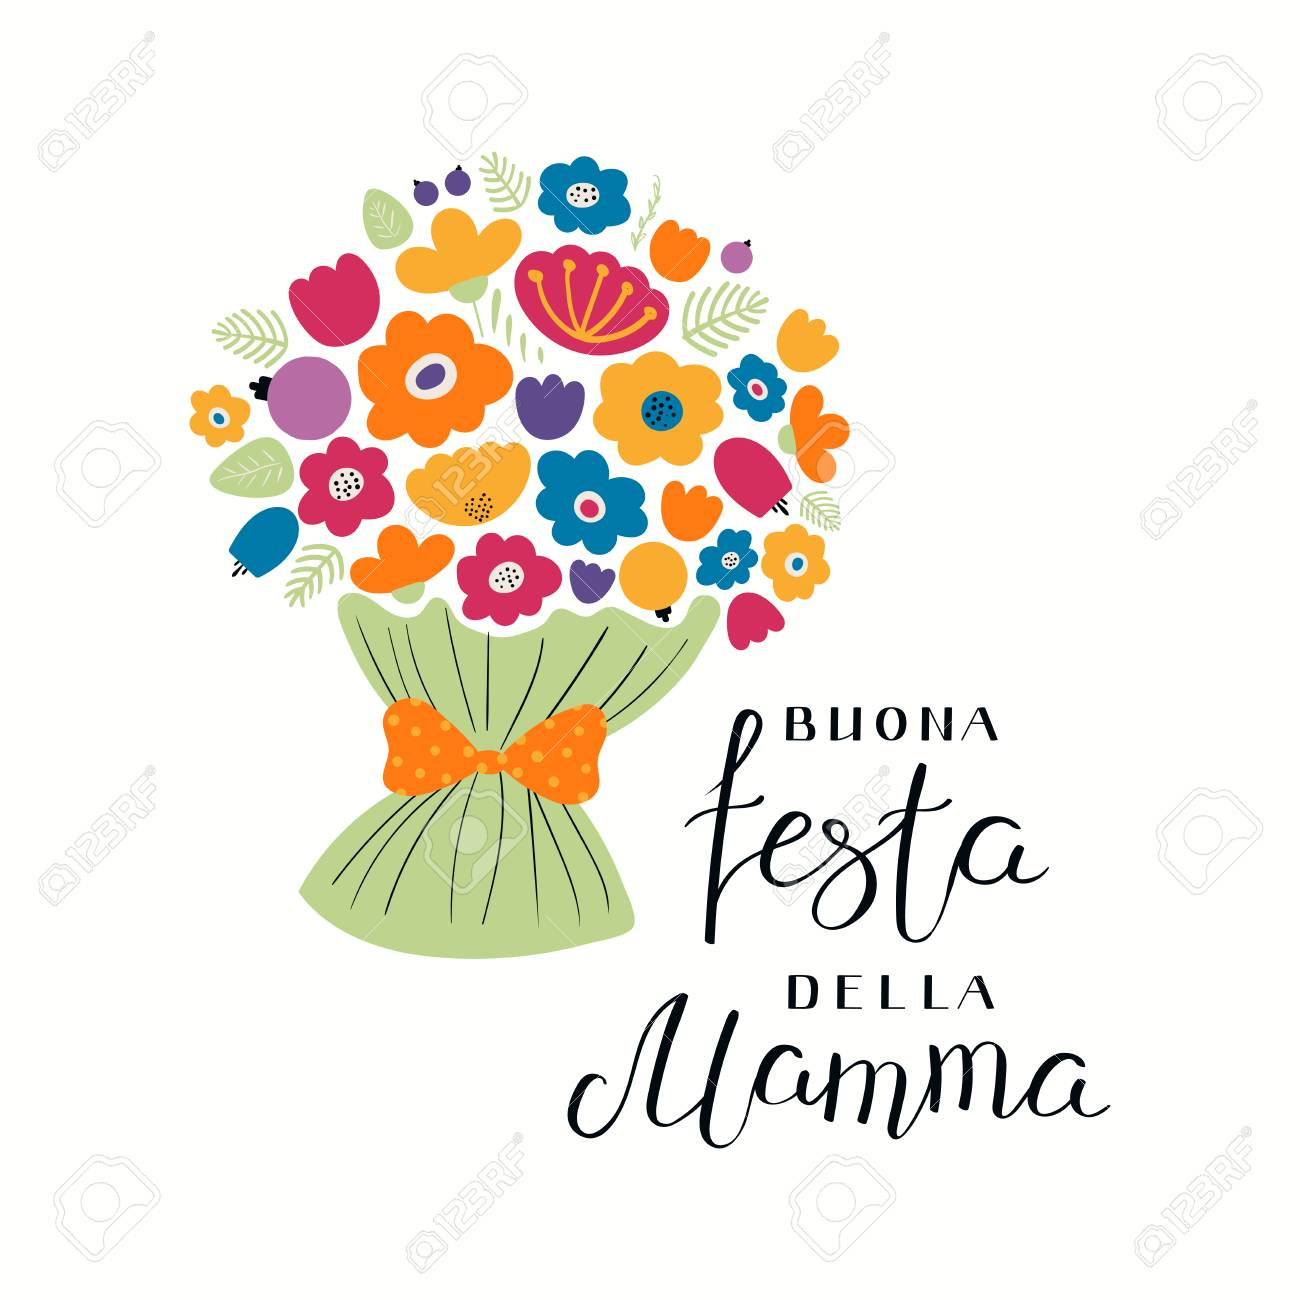 Hand written lettering quote Happy Mothers Day in Italian, Buona festa della mama, with a bouquet flowers. Isolated objects on white. Vector illustration. Design concept for banner, greeting card. - 99736653